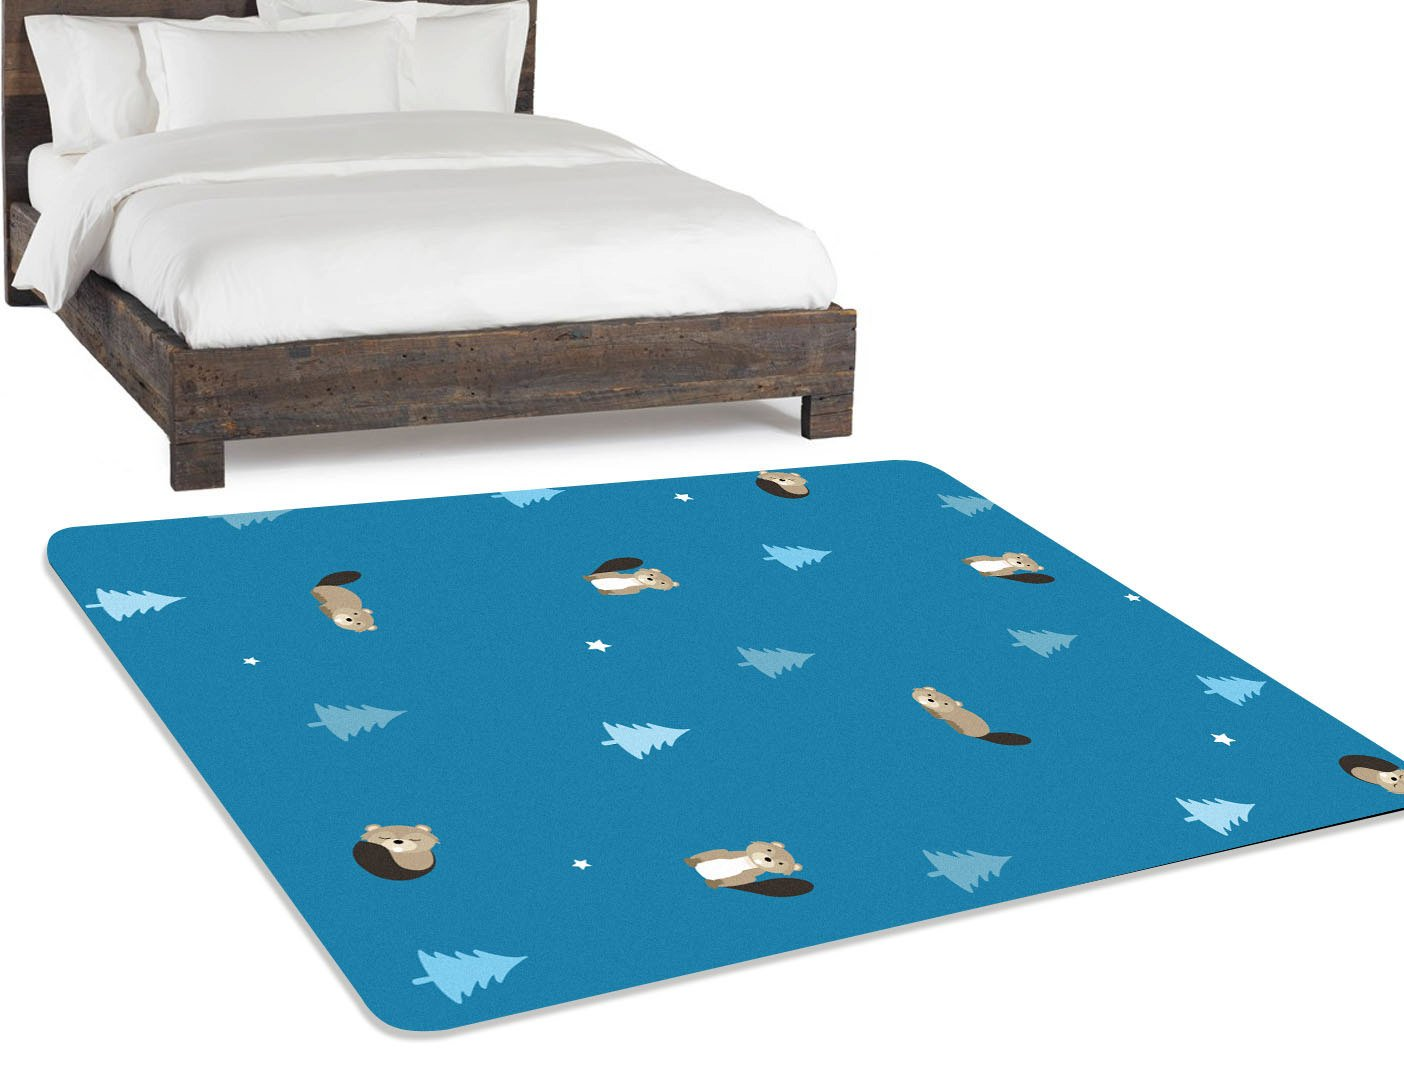 Animal Nursery Rug, navy blue background with beavers and pine trees on it.